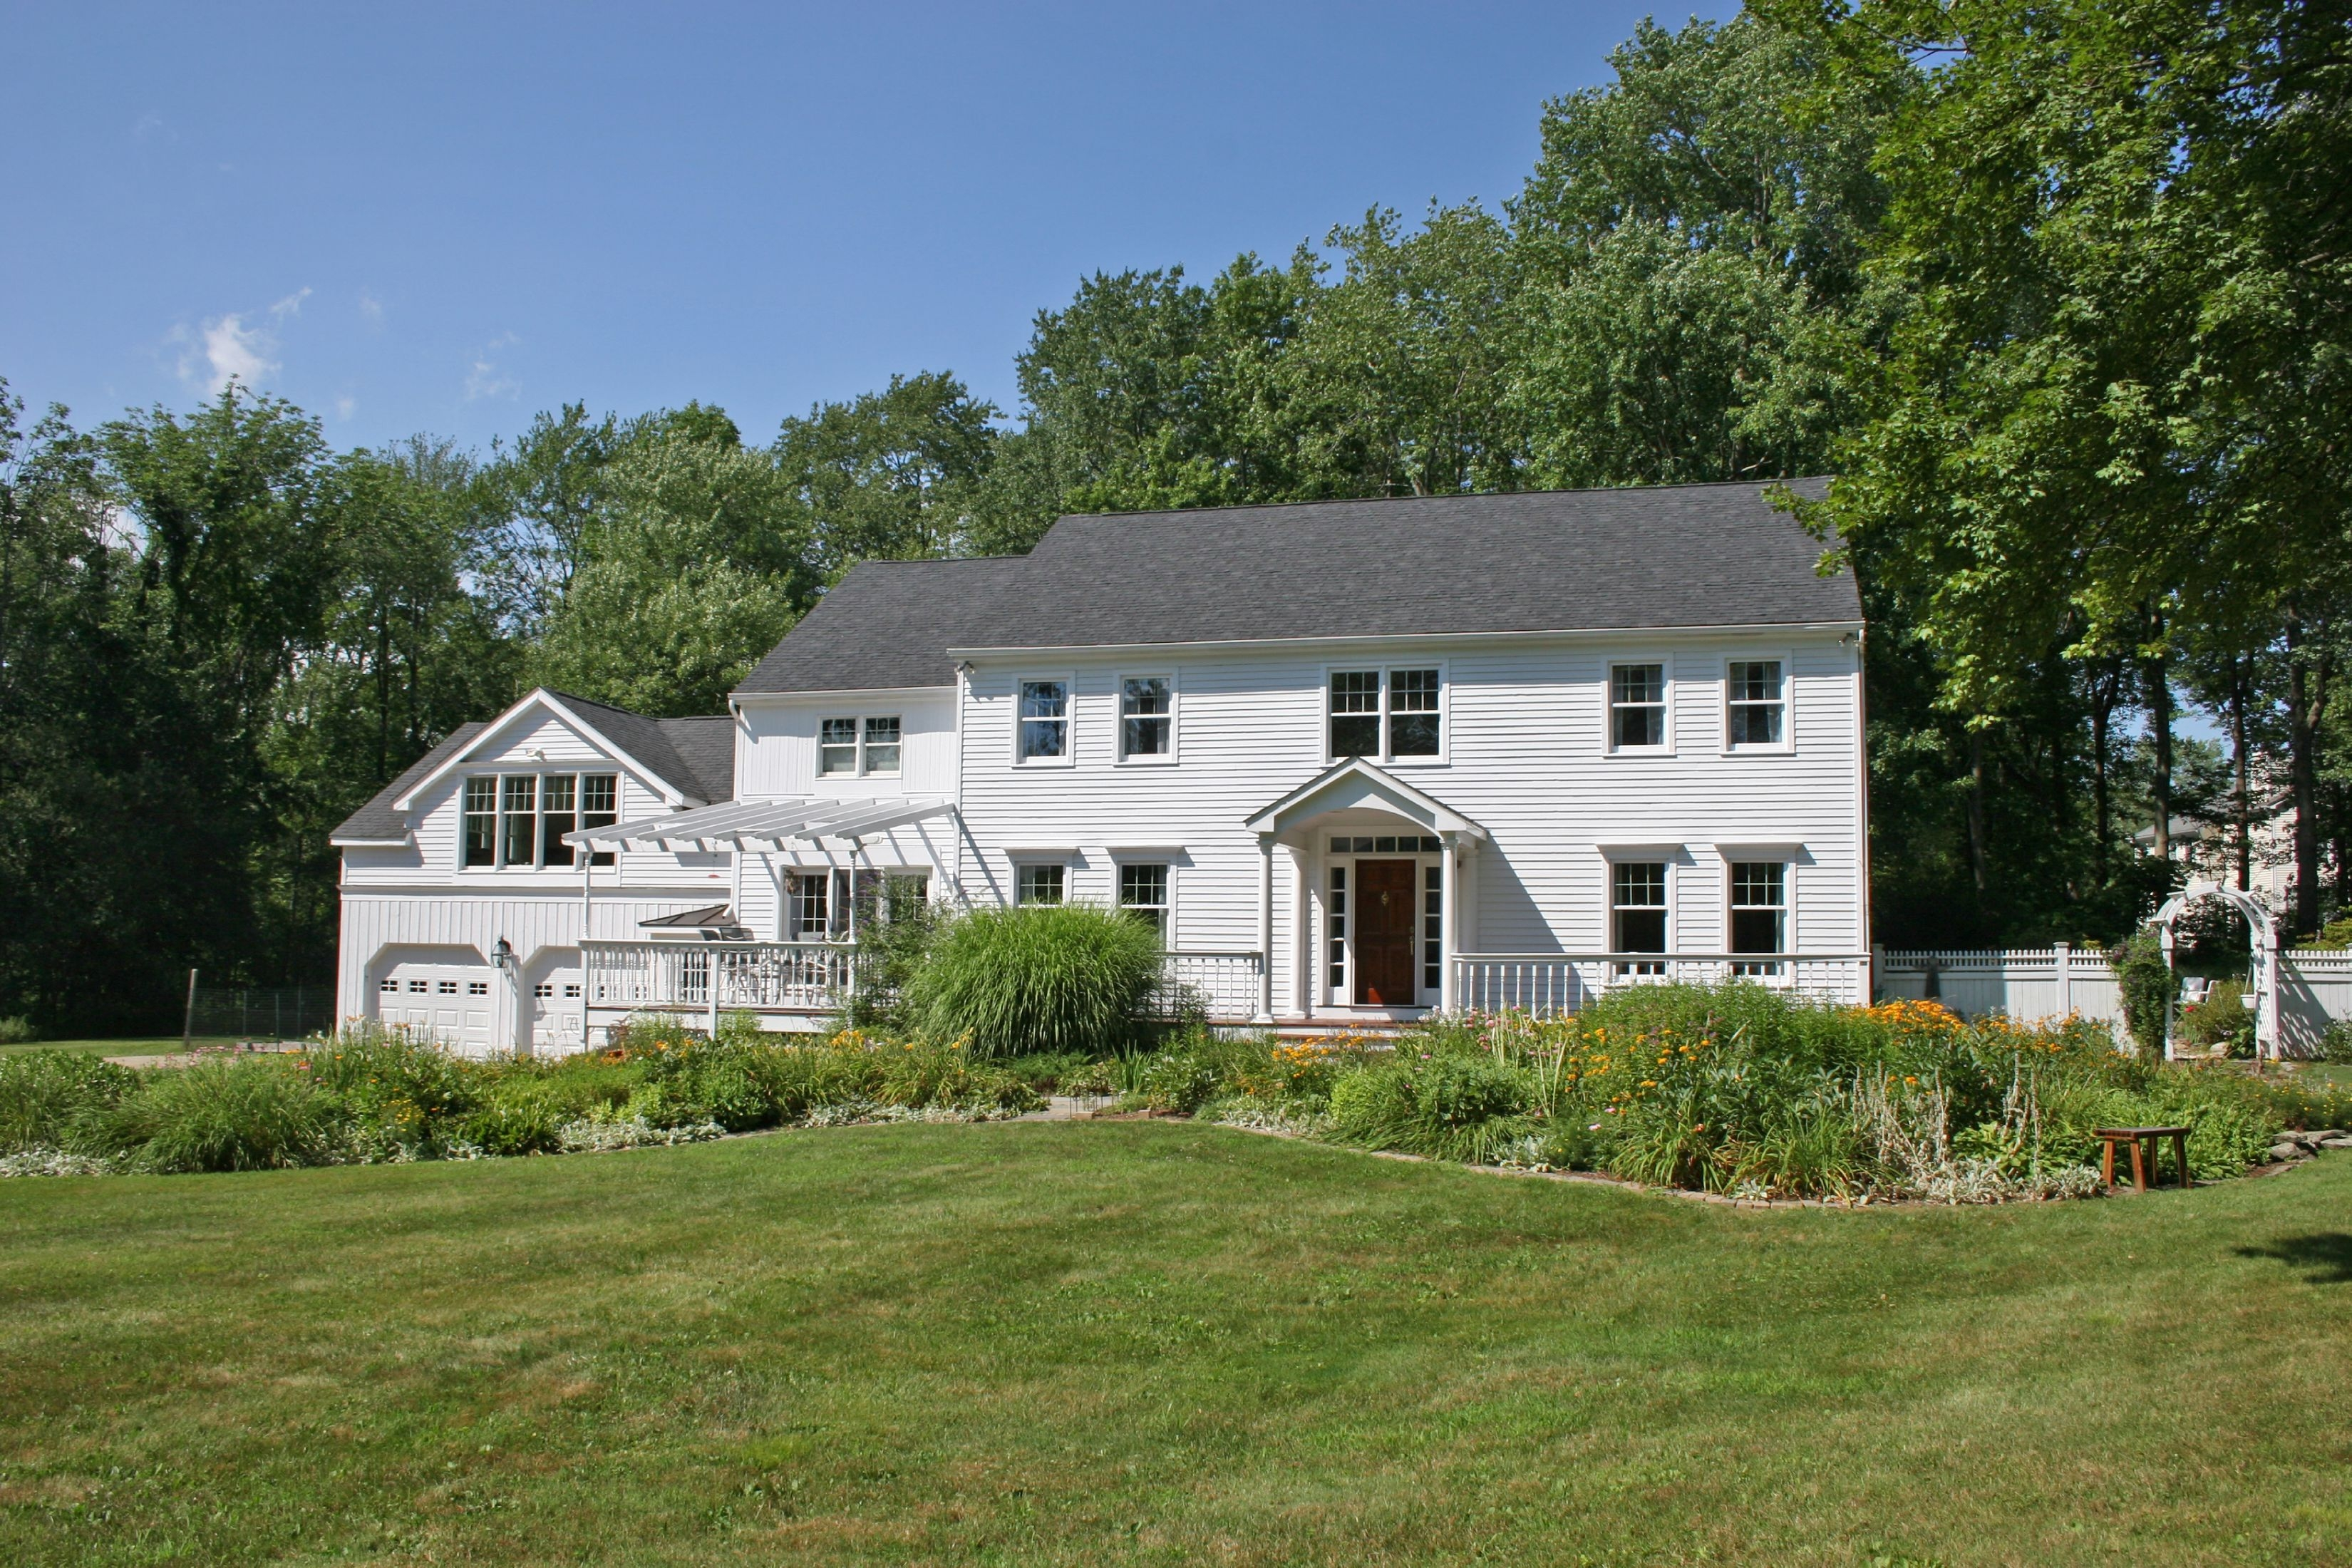 Single Family Home for Sale at Builder's Own Home 76 Benson Road Ridgefield, Connecticut 06877 United States